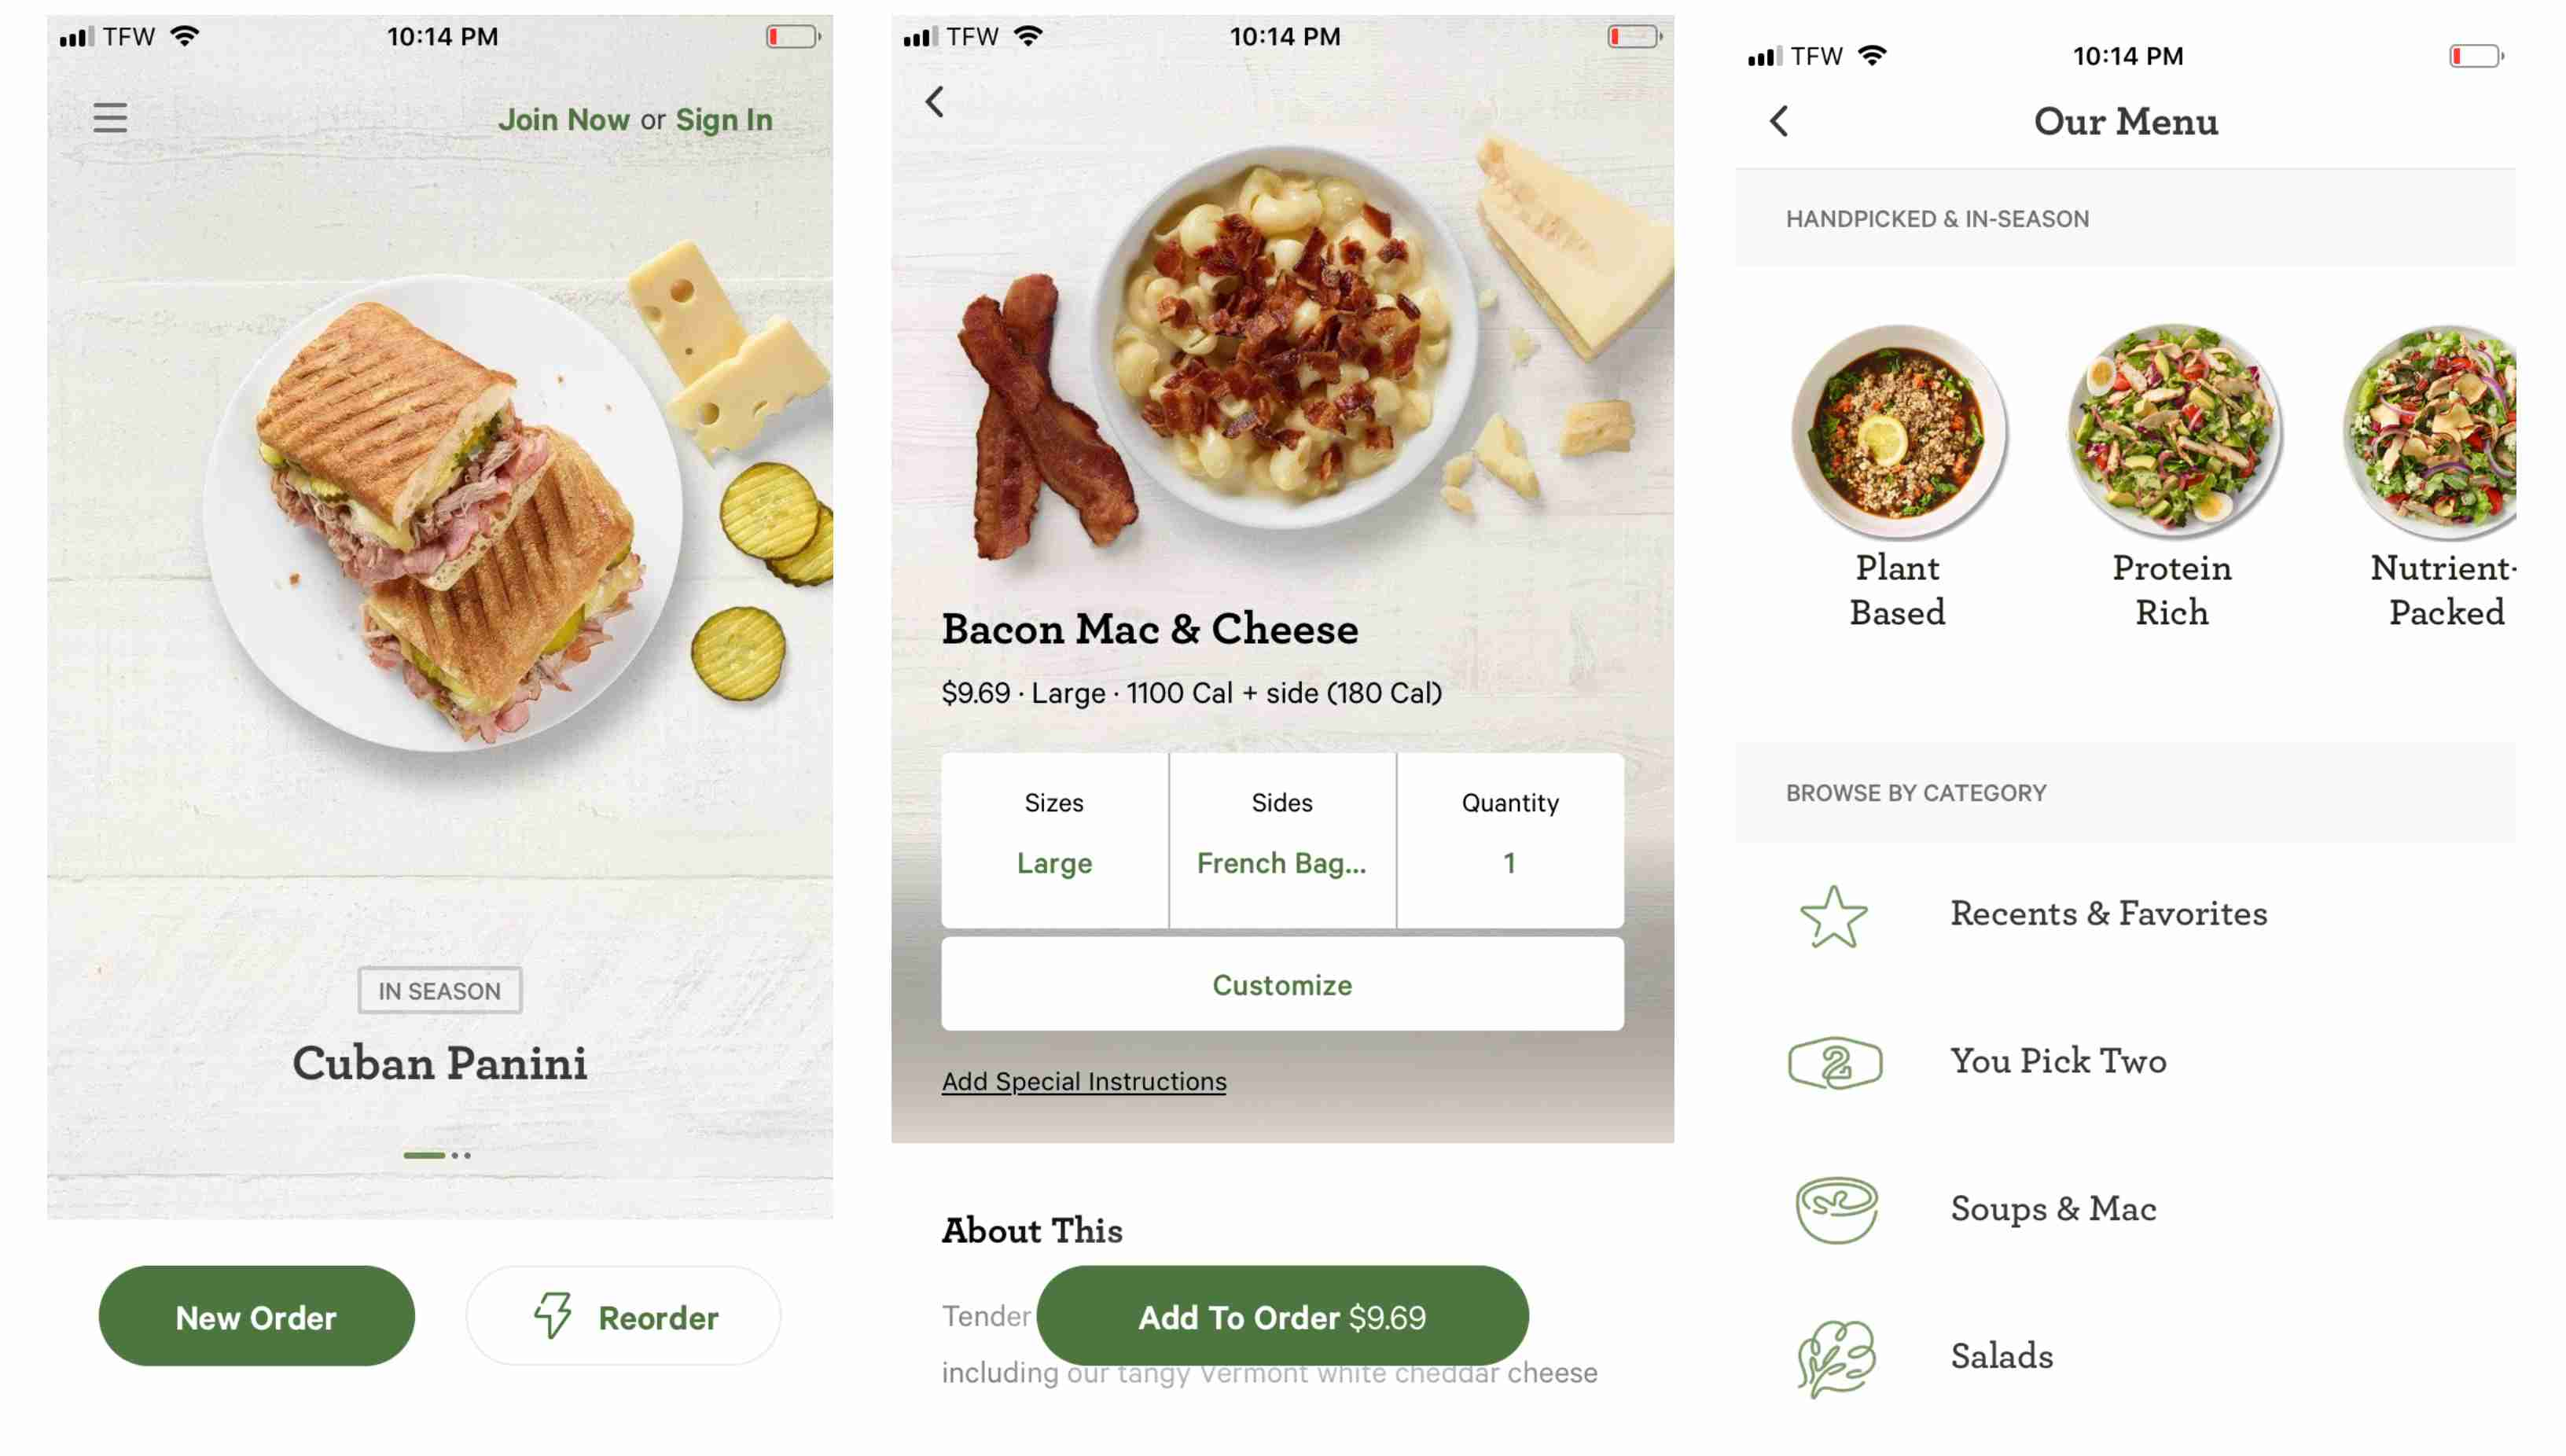 The 10 Best Fast Food Restaurant Apps Of 2019